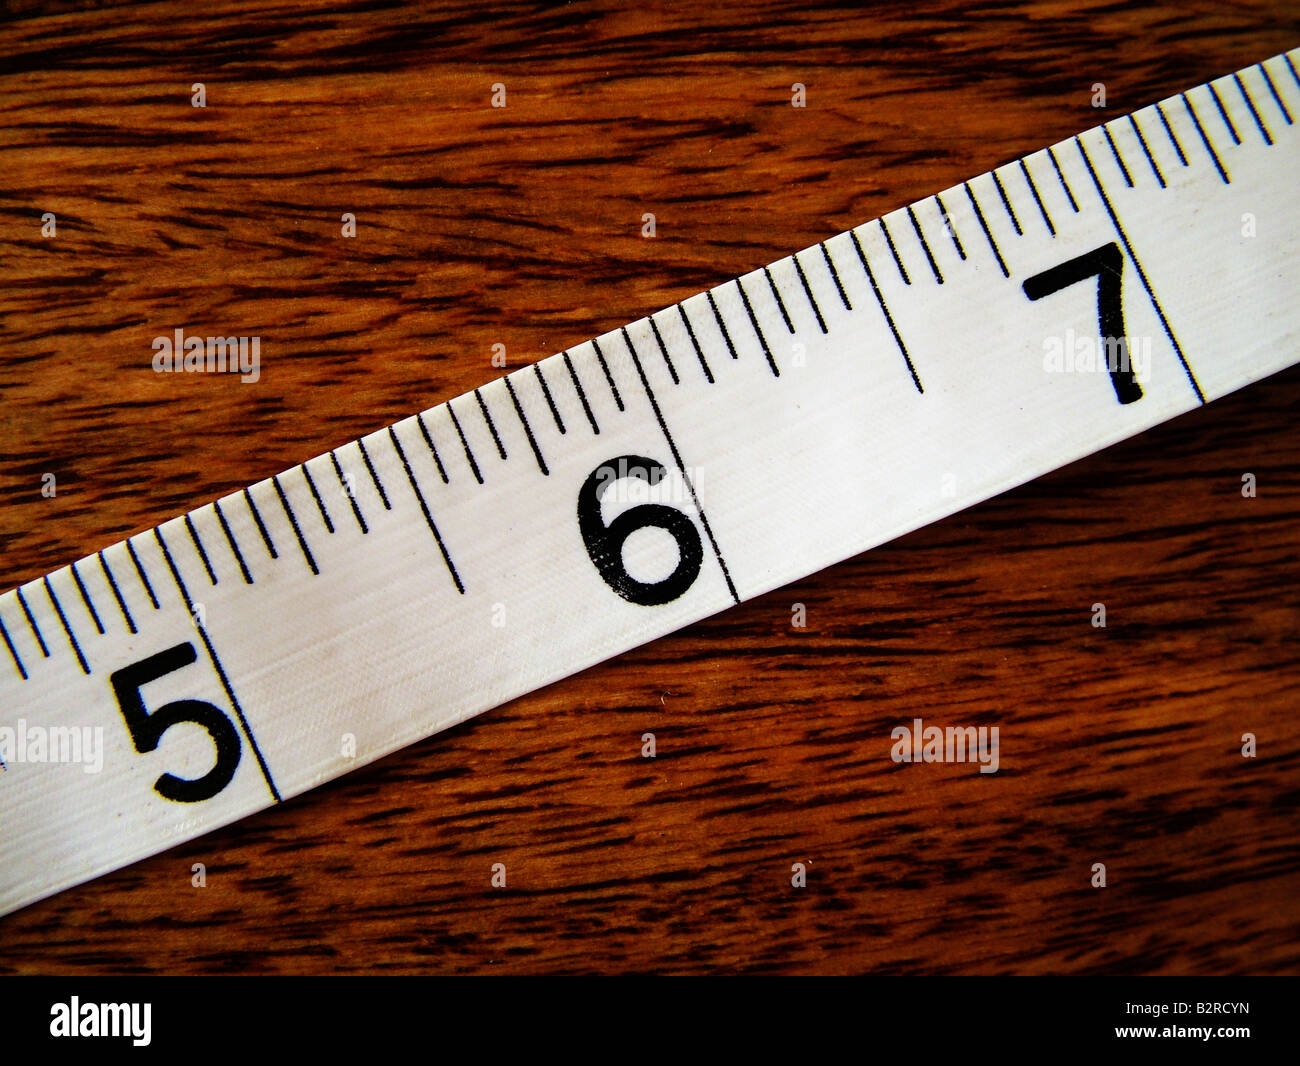 Tape measure 5 6 7 inches - Stock Image